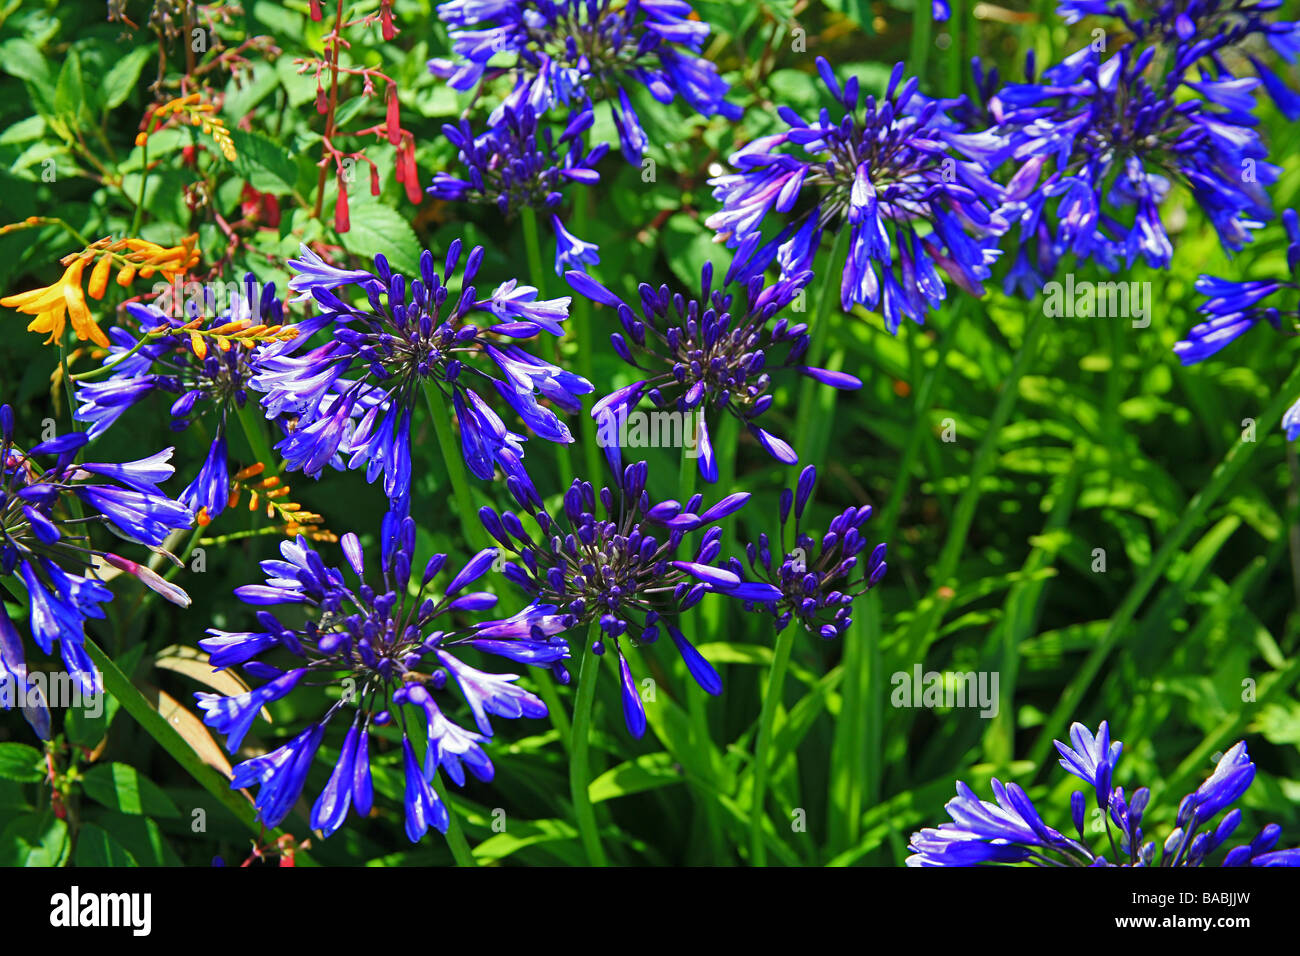 Agapanthus flowers in the South African Garden at The Garden House in Buckland Monachorum, Devon, Enghland, UK - Stock Image